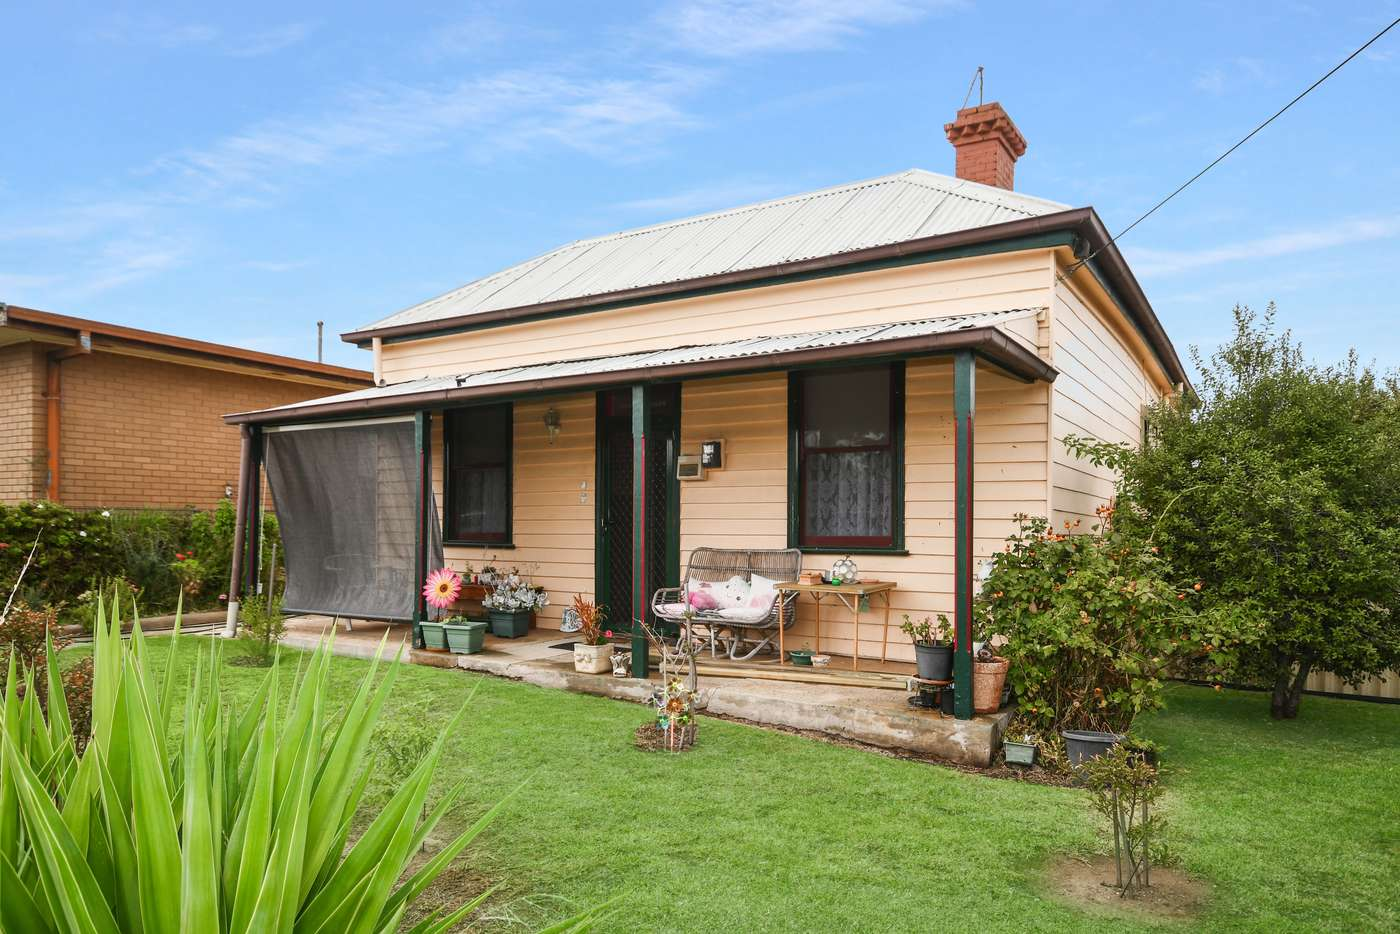 Main view of Homely house listing, 36 Houston St, Stawell VIC 3380